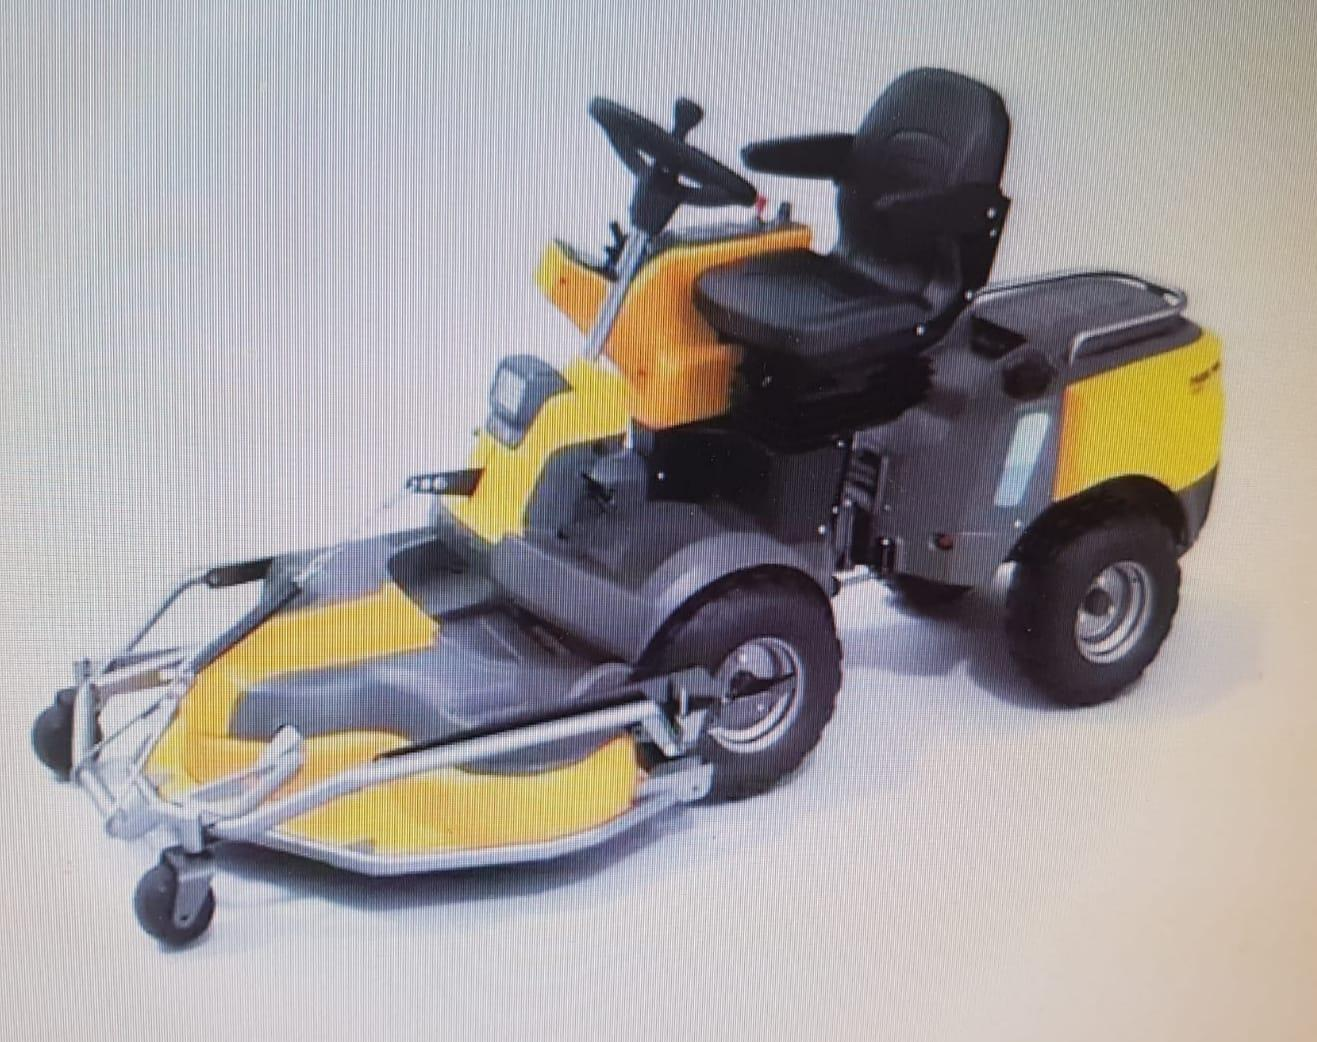 Gardaí investigating theft of lawnmower in Laois